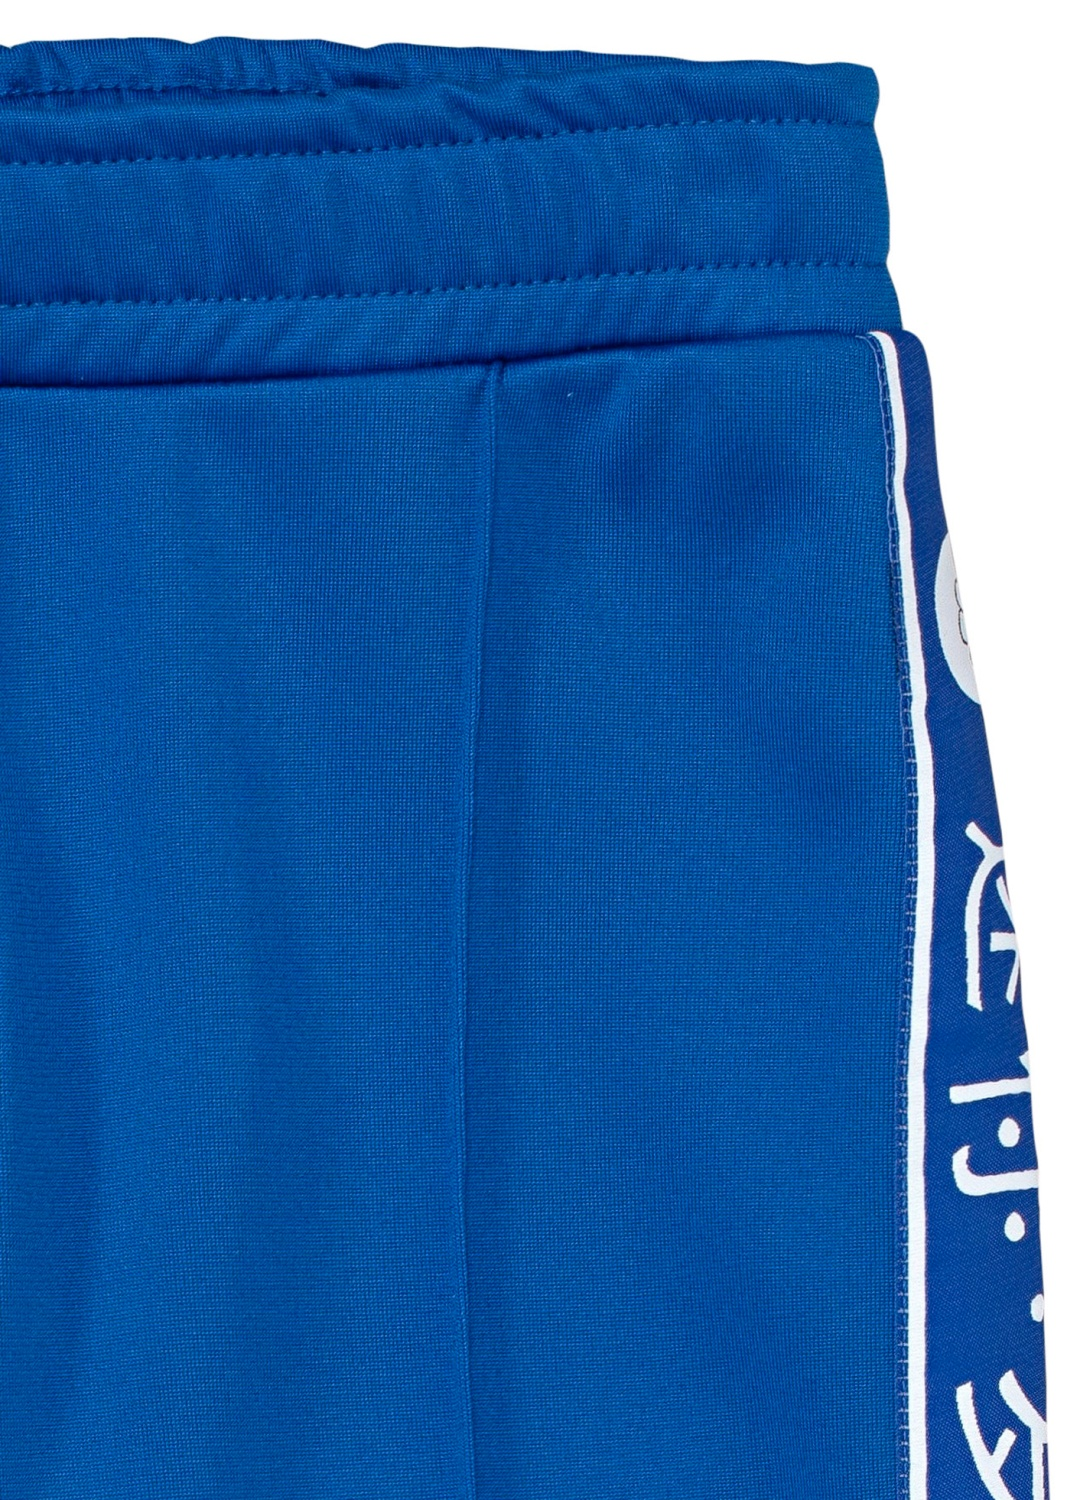 Rabbit wct trousers -X- image number 2